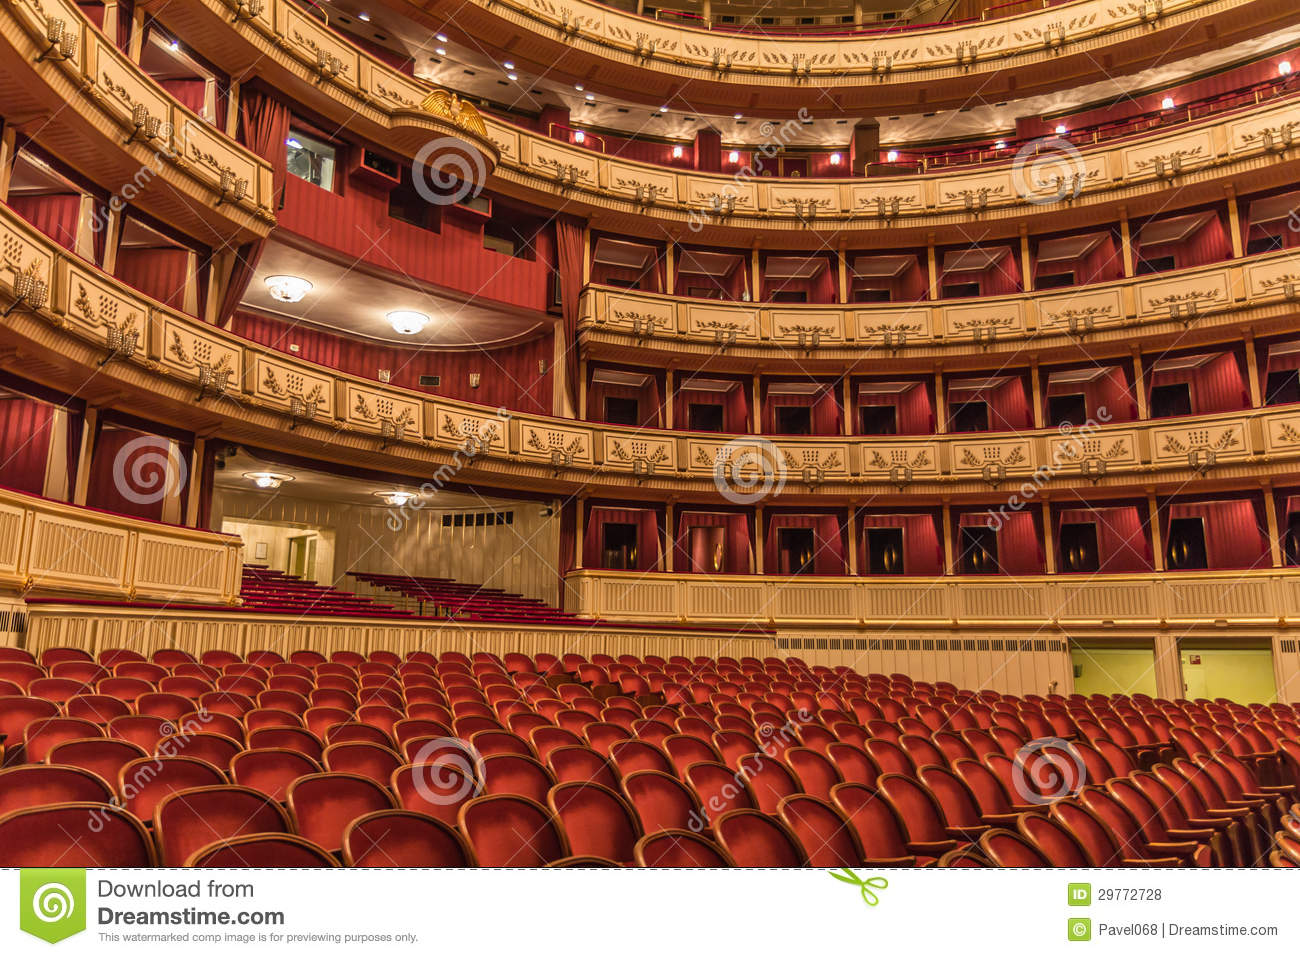 Image Result For Royalty Free Opera Music Download